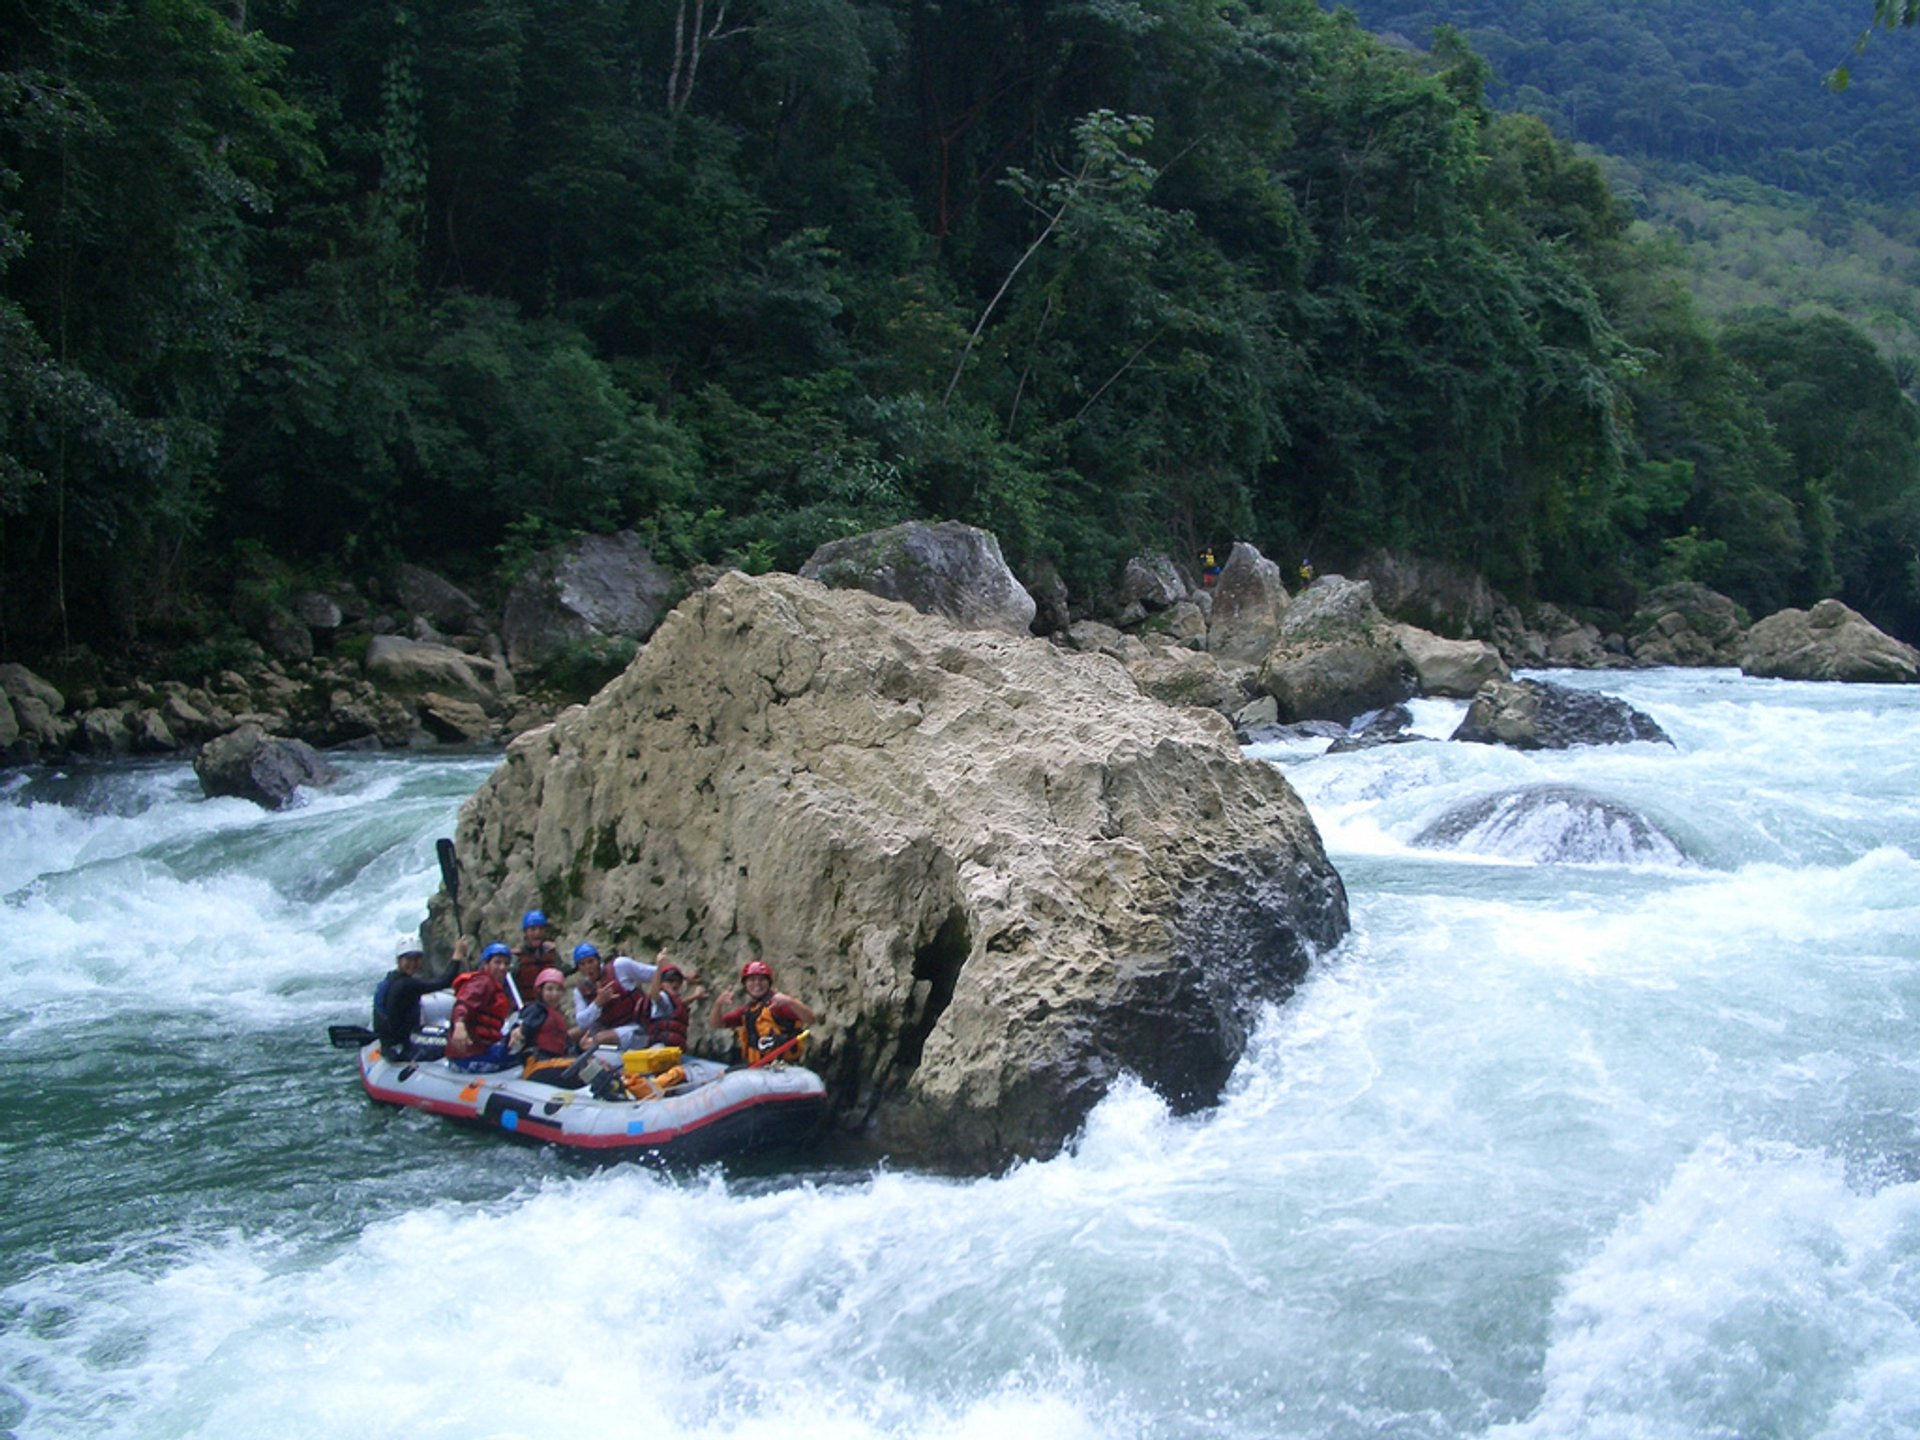 White Water Rafting in Guatemala 2020 - Best Time